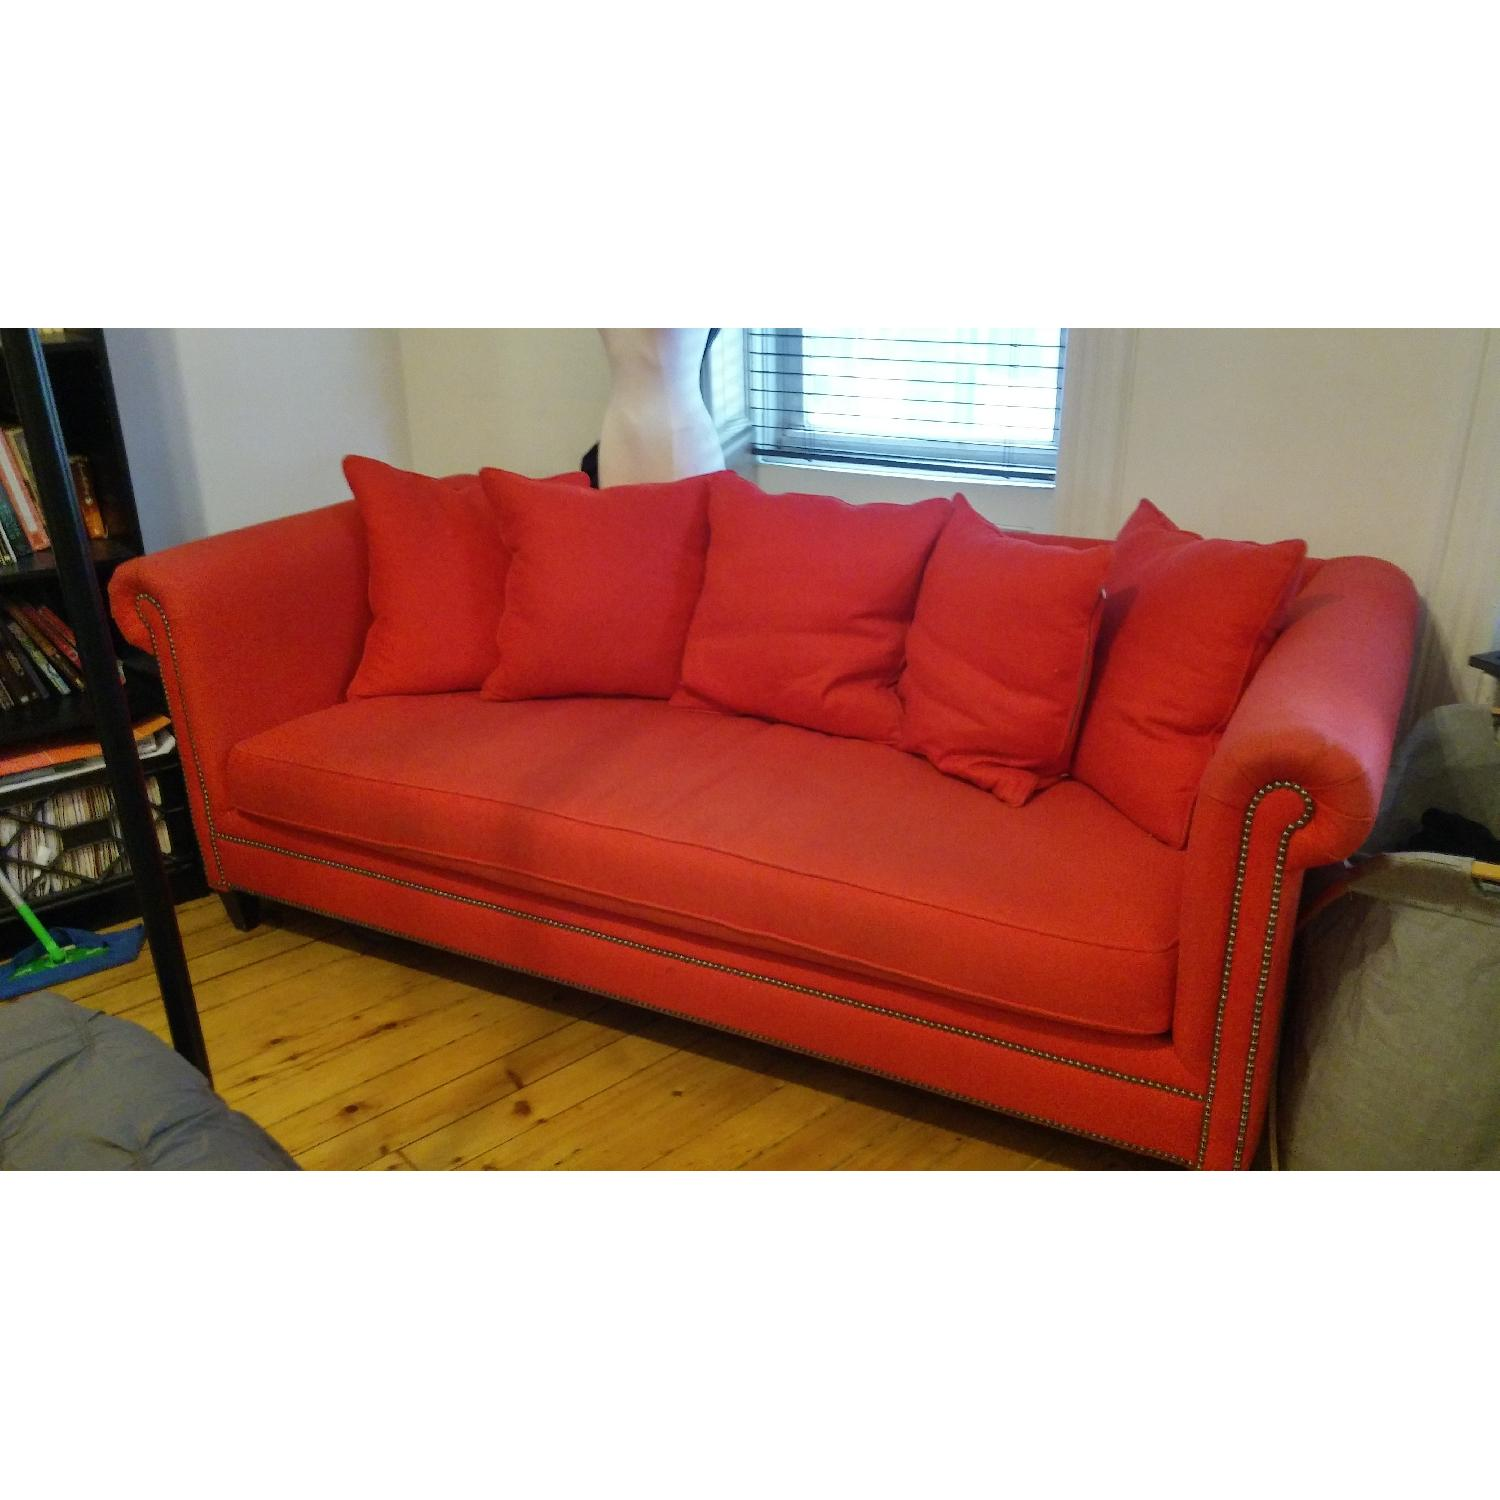 Crate & Barrel Red Couch - image-2